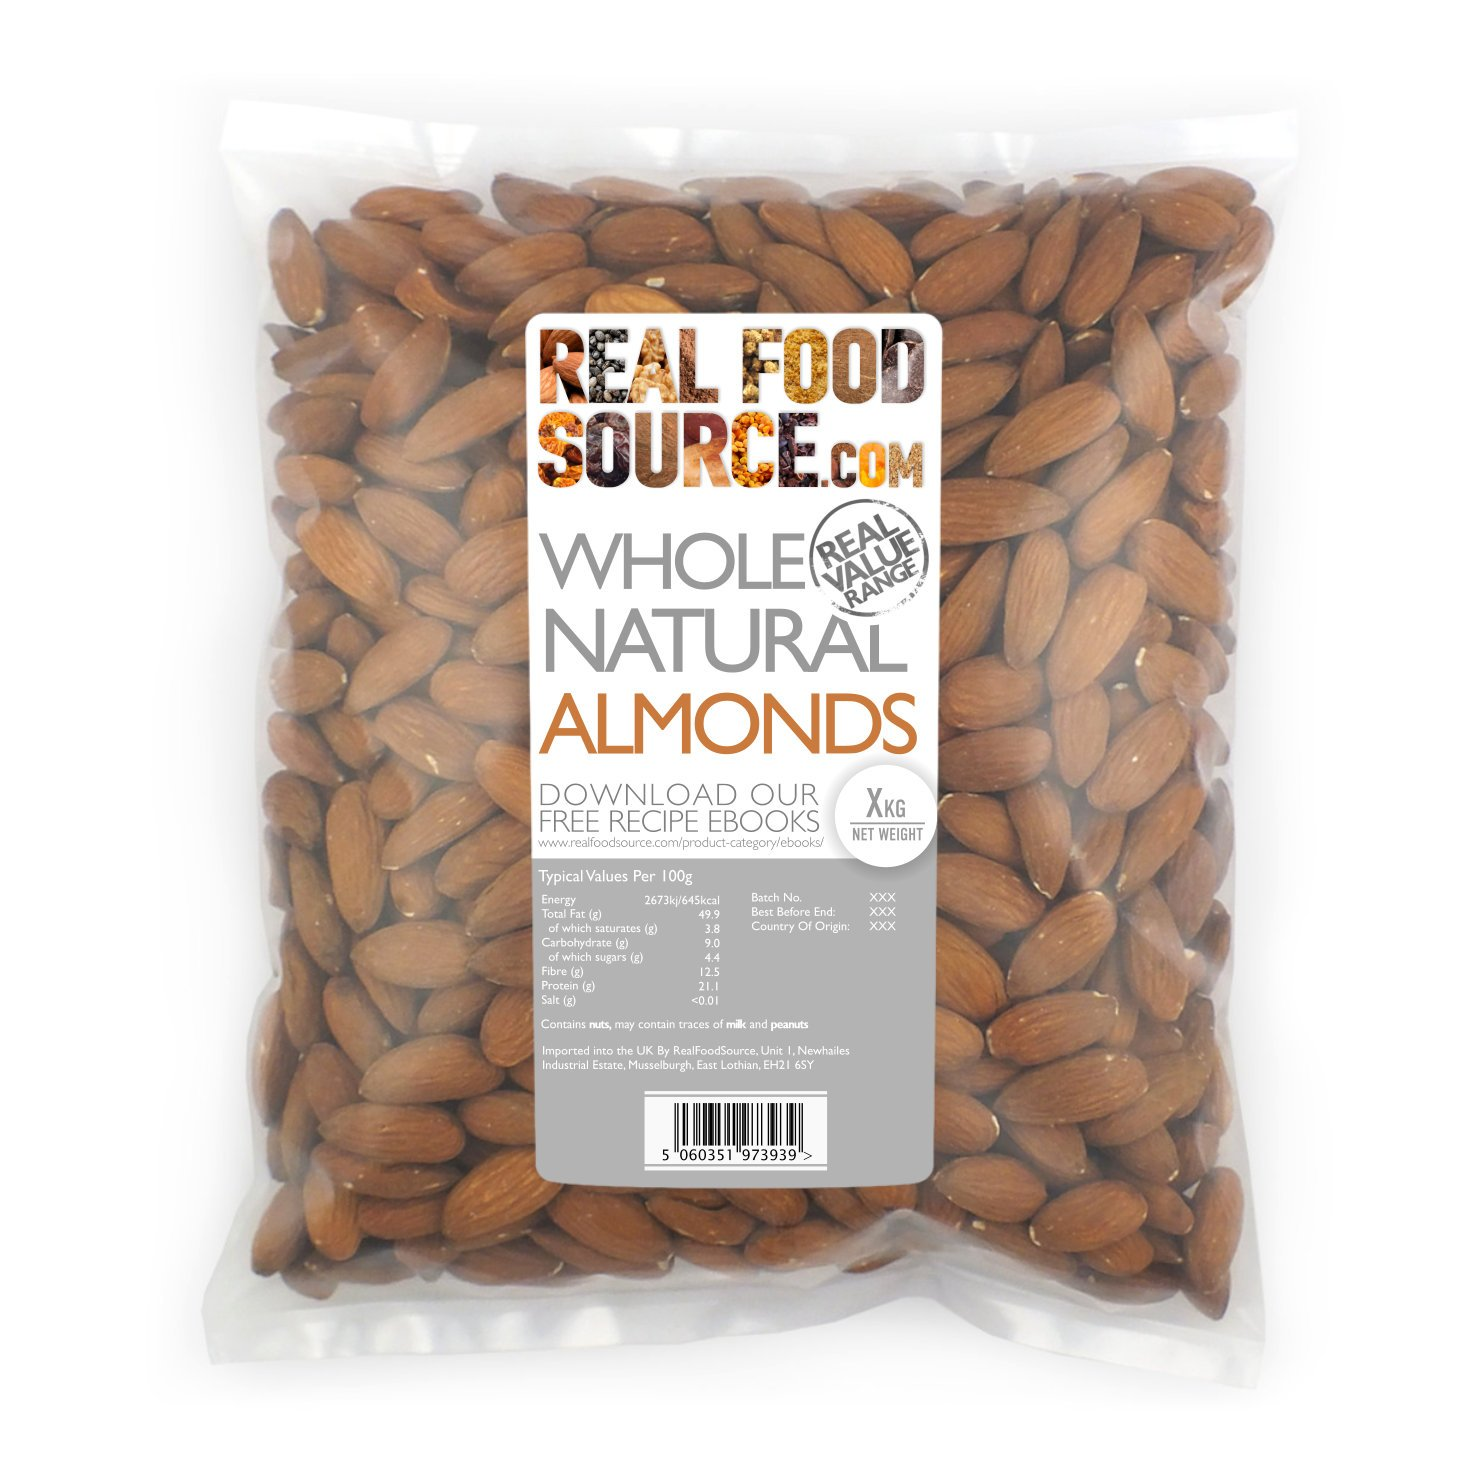 038fbc76 RealFoodSource Almonds, Whole & Natural (1kg): Amazon.co.uk: Grocery